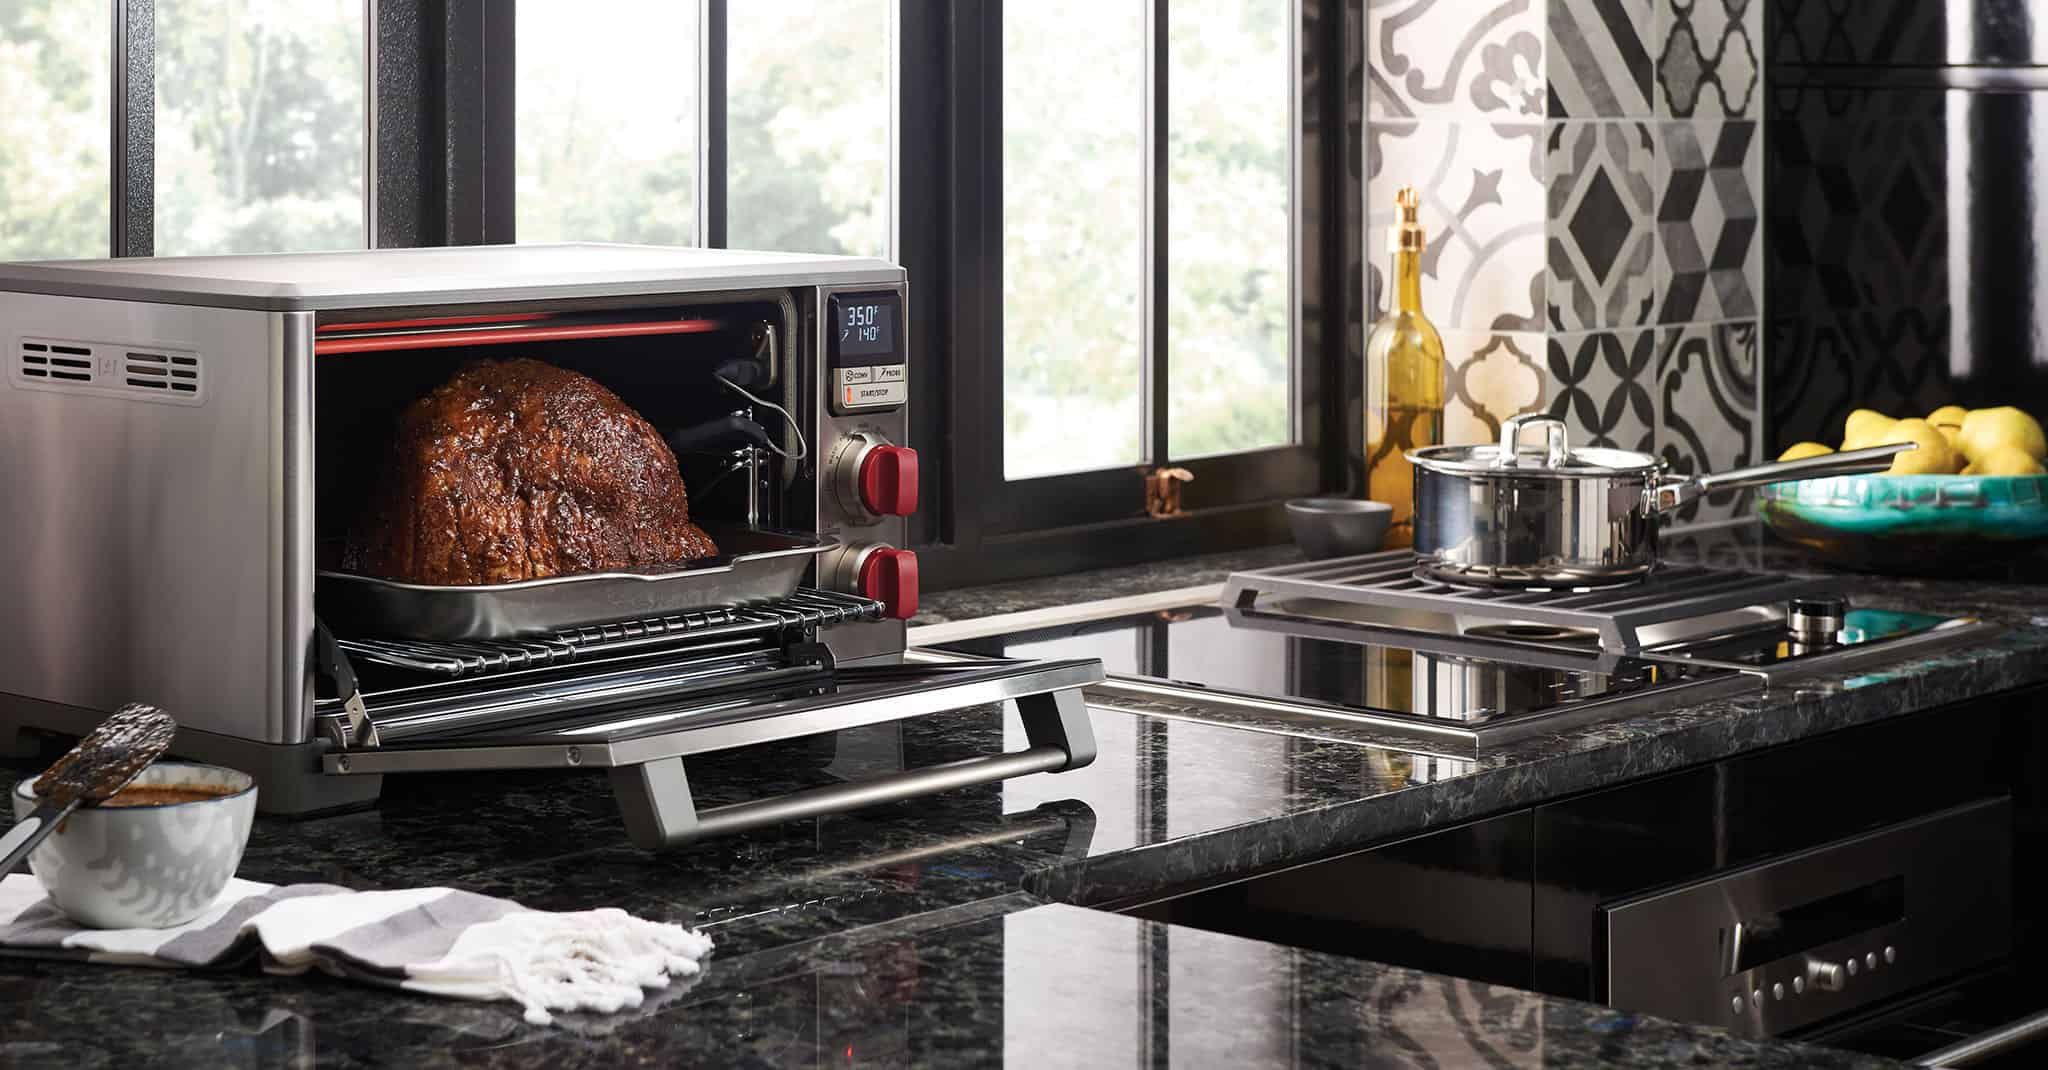 Best Countertop Ovens What You Might Be Missing In 2021